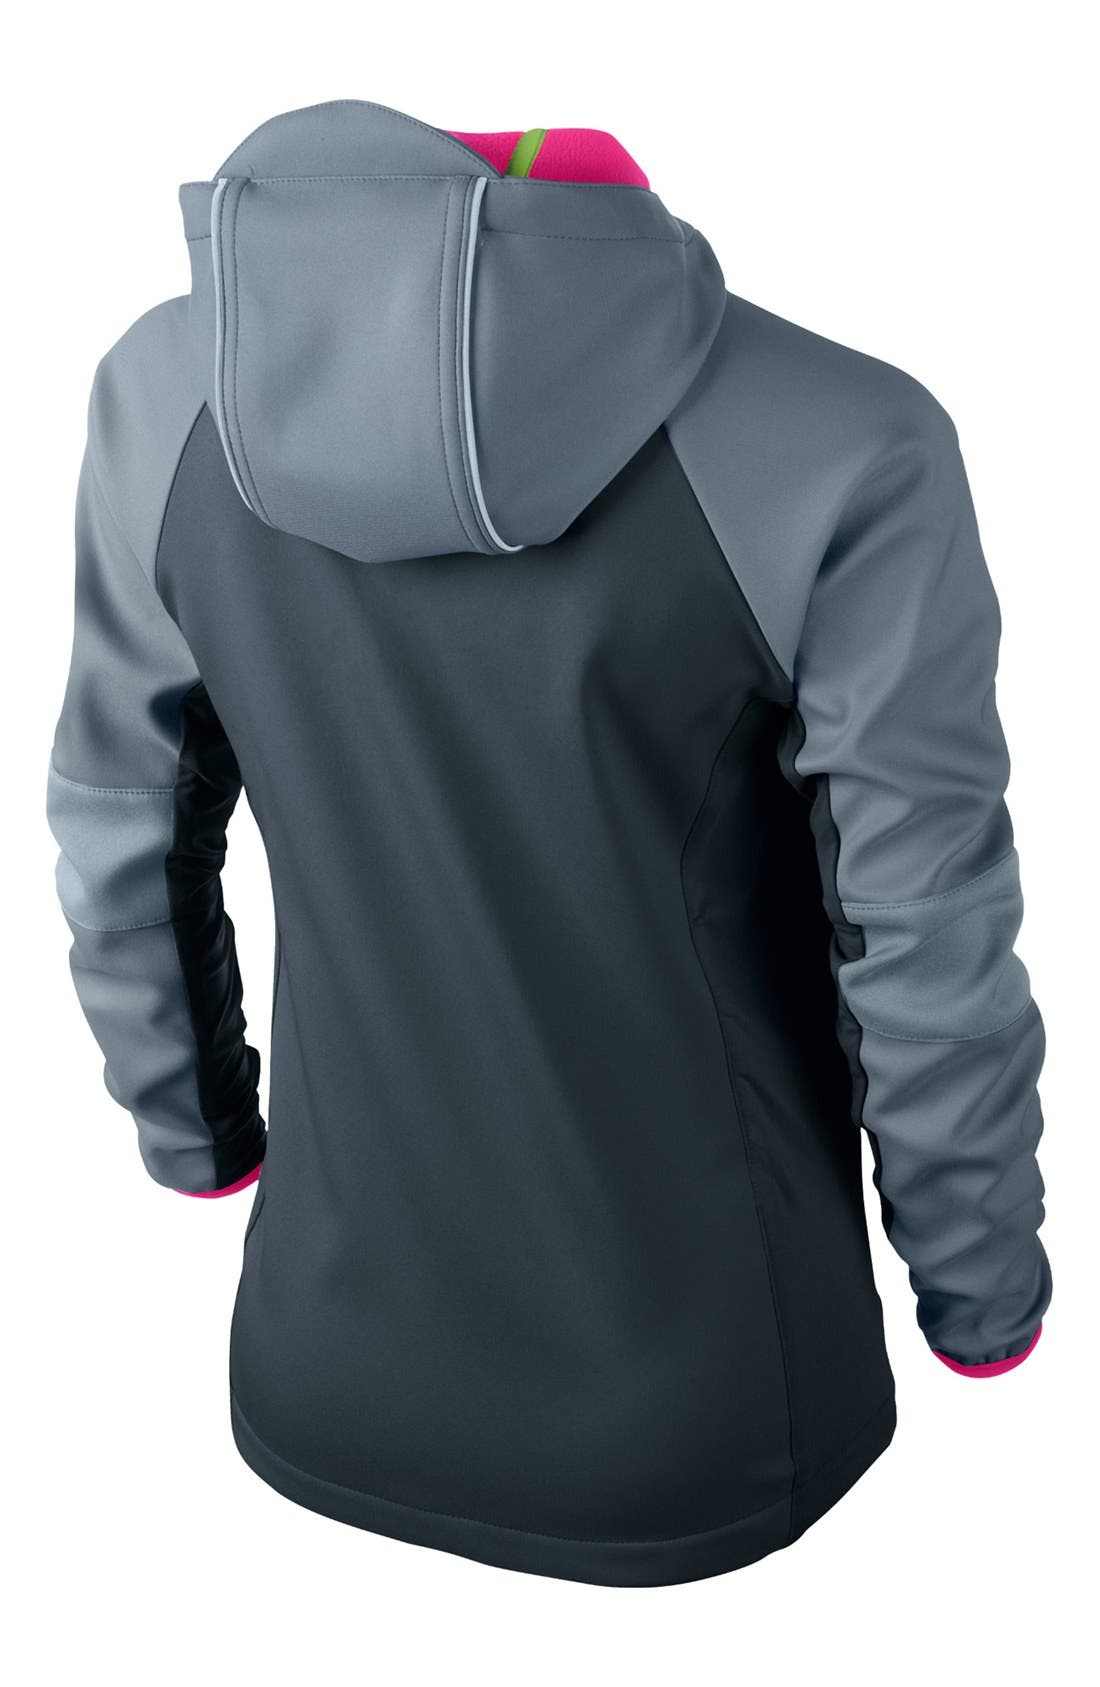 'Ultimate Protect' Jacket,                             Alternate thumbnail 2, color,                             084